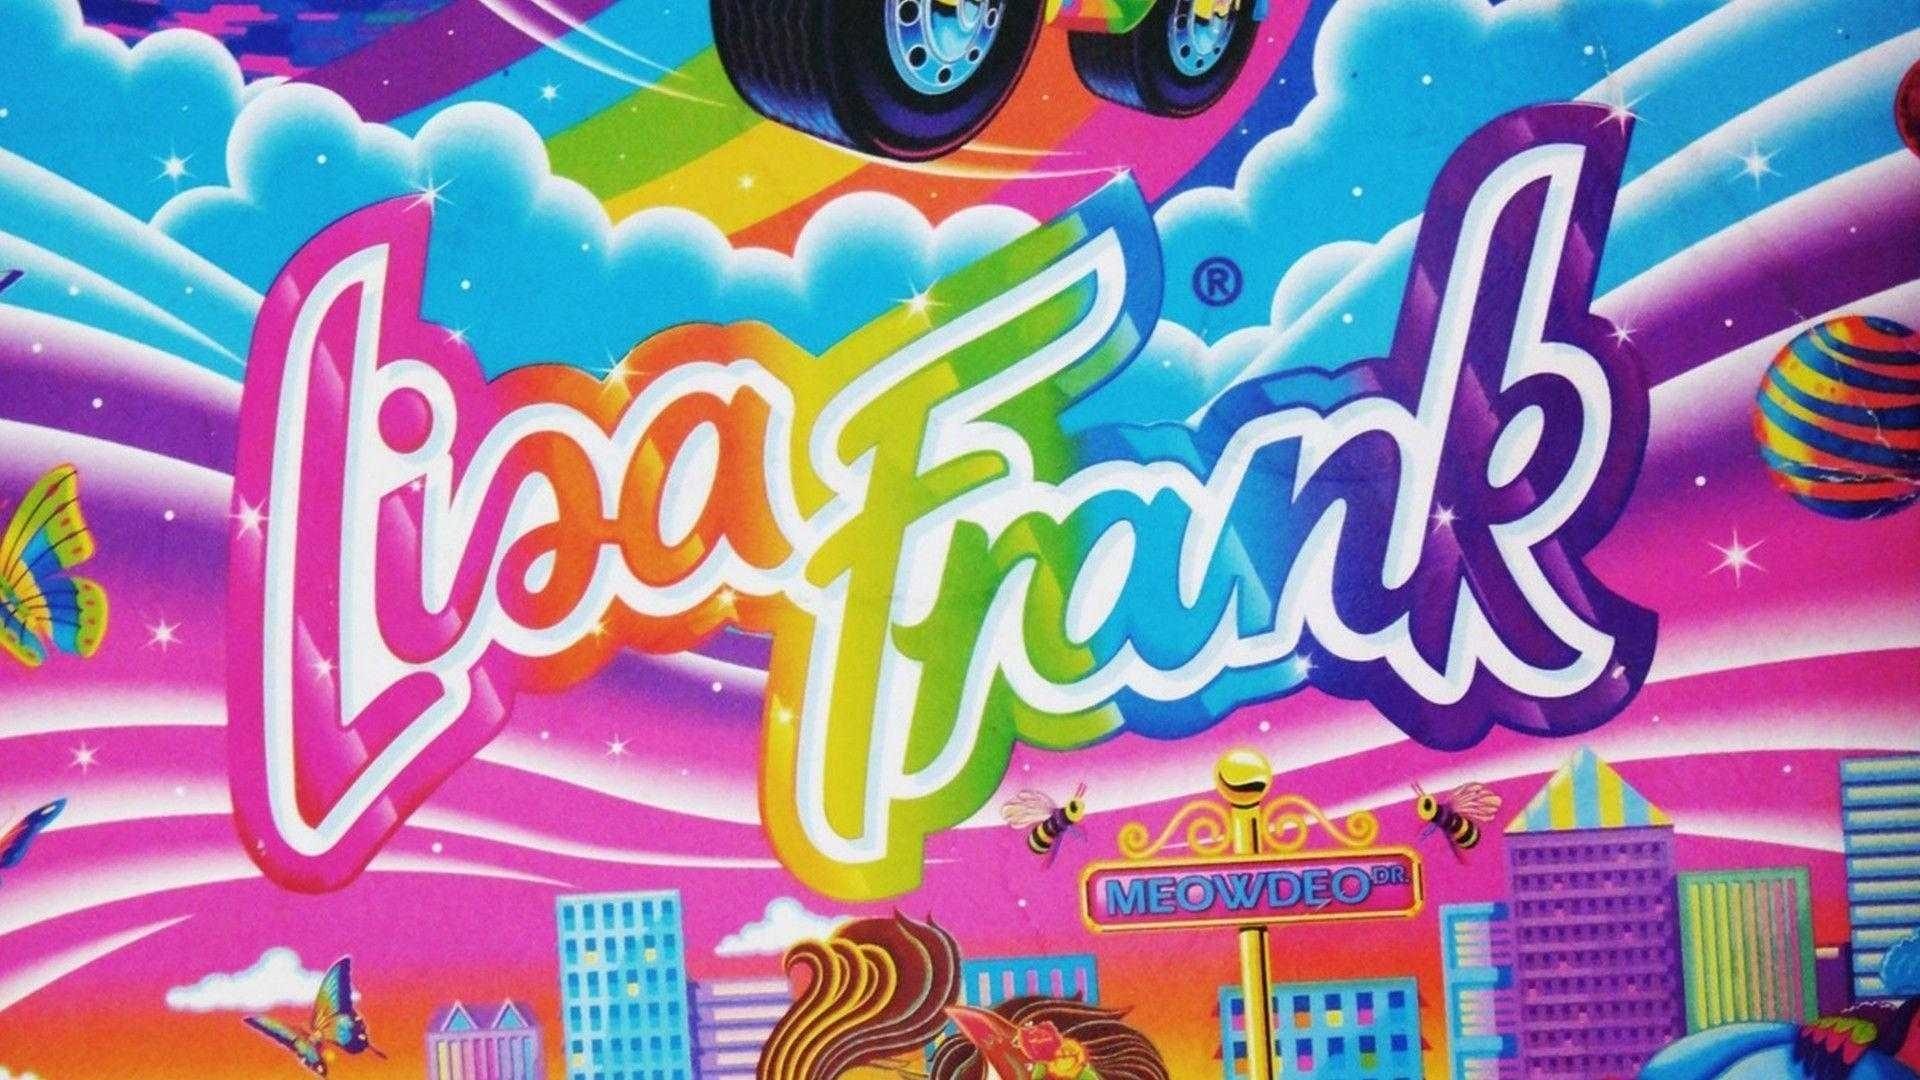 lisa frank wallpaper 4k hd pics of desktop | wallvie